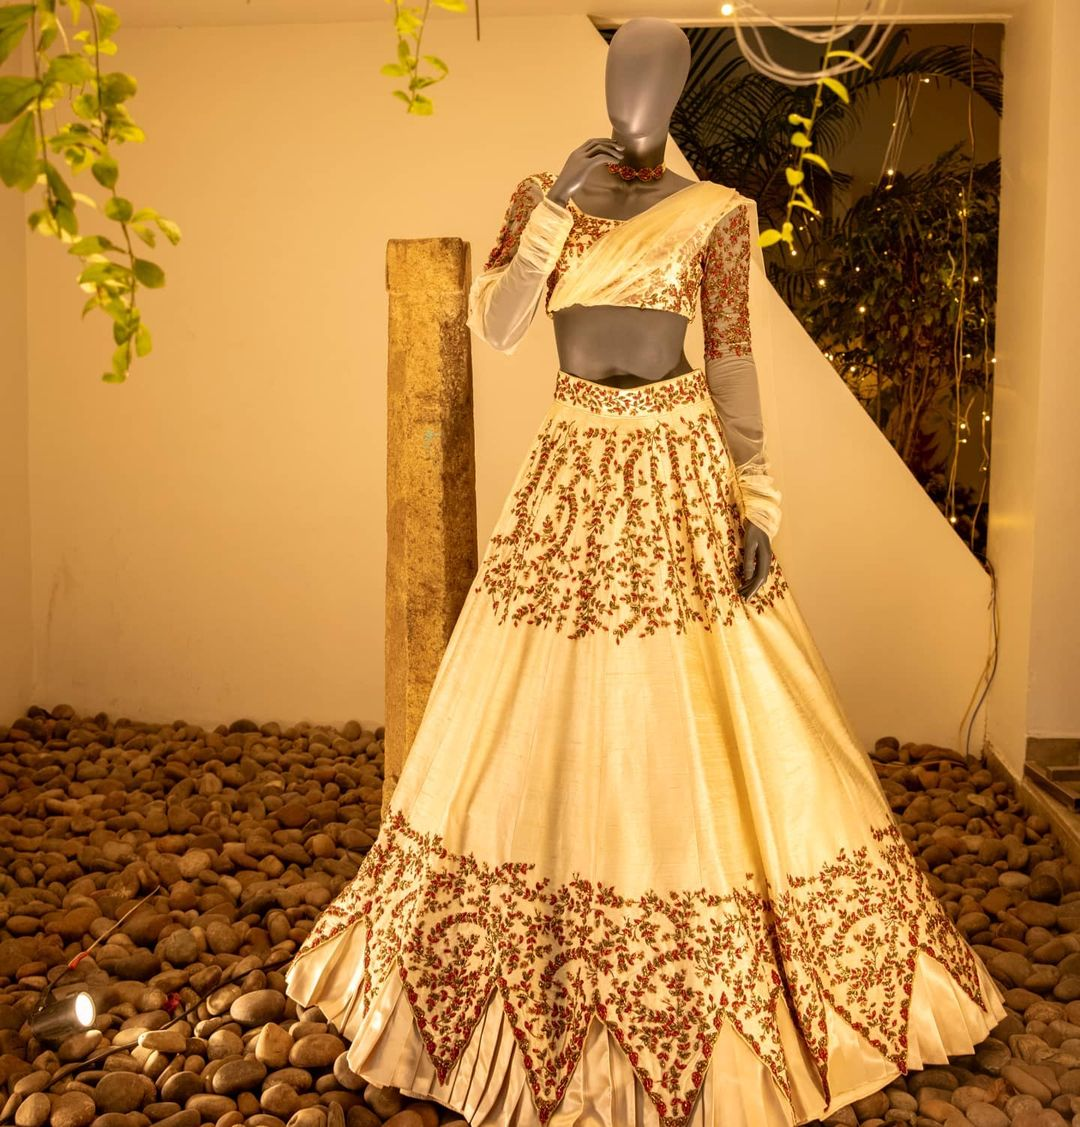 Intricately embroidered floral couture lehenga . Finely embroidered with glass beads in shades of ruby red and emerald green  with pleated satin finish and a sheer dupatta. 2021-08-27